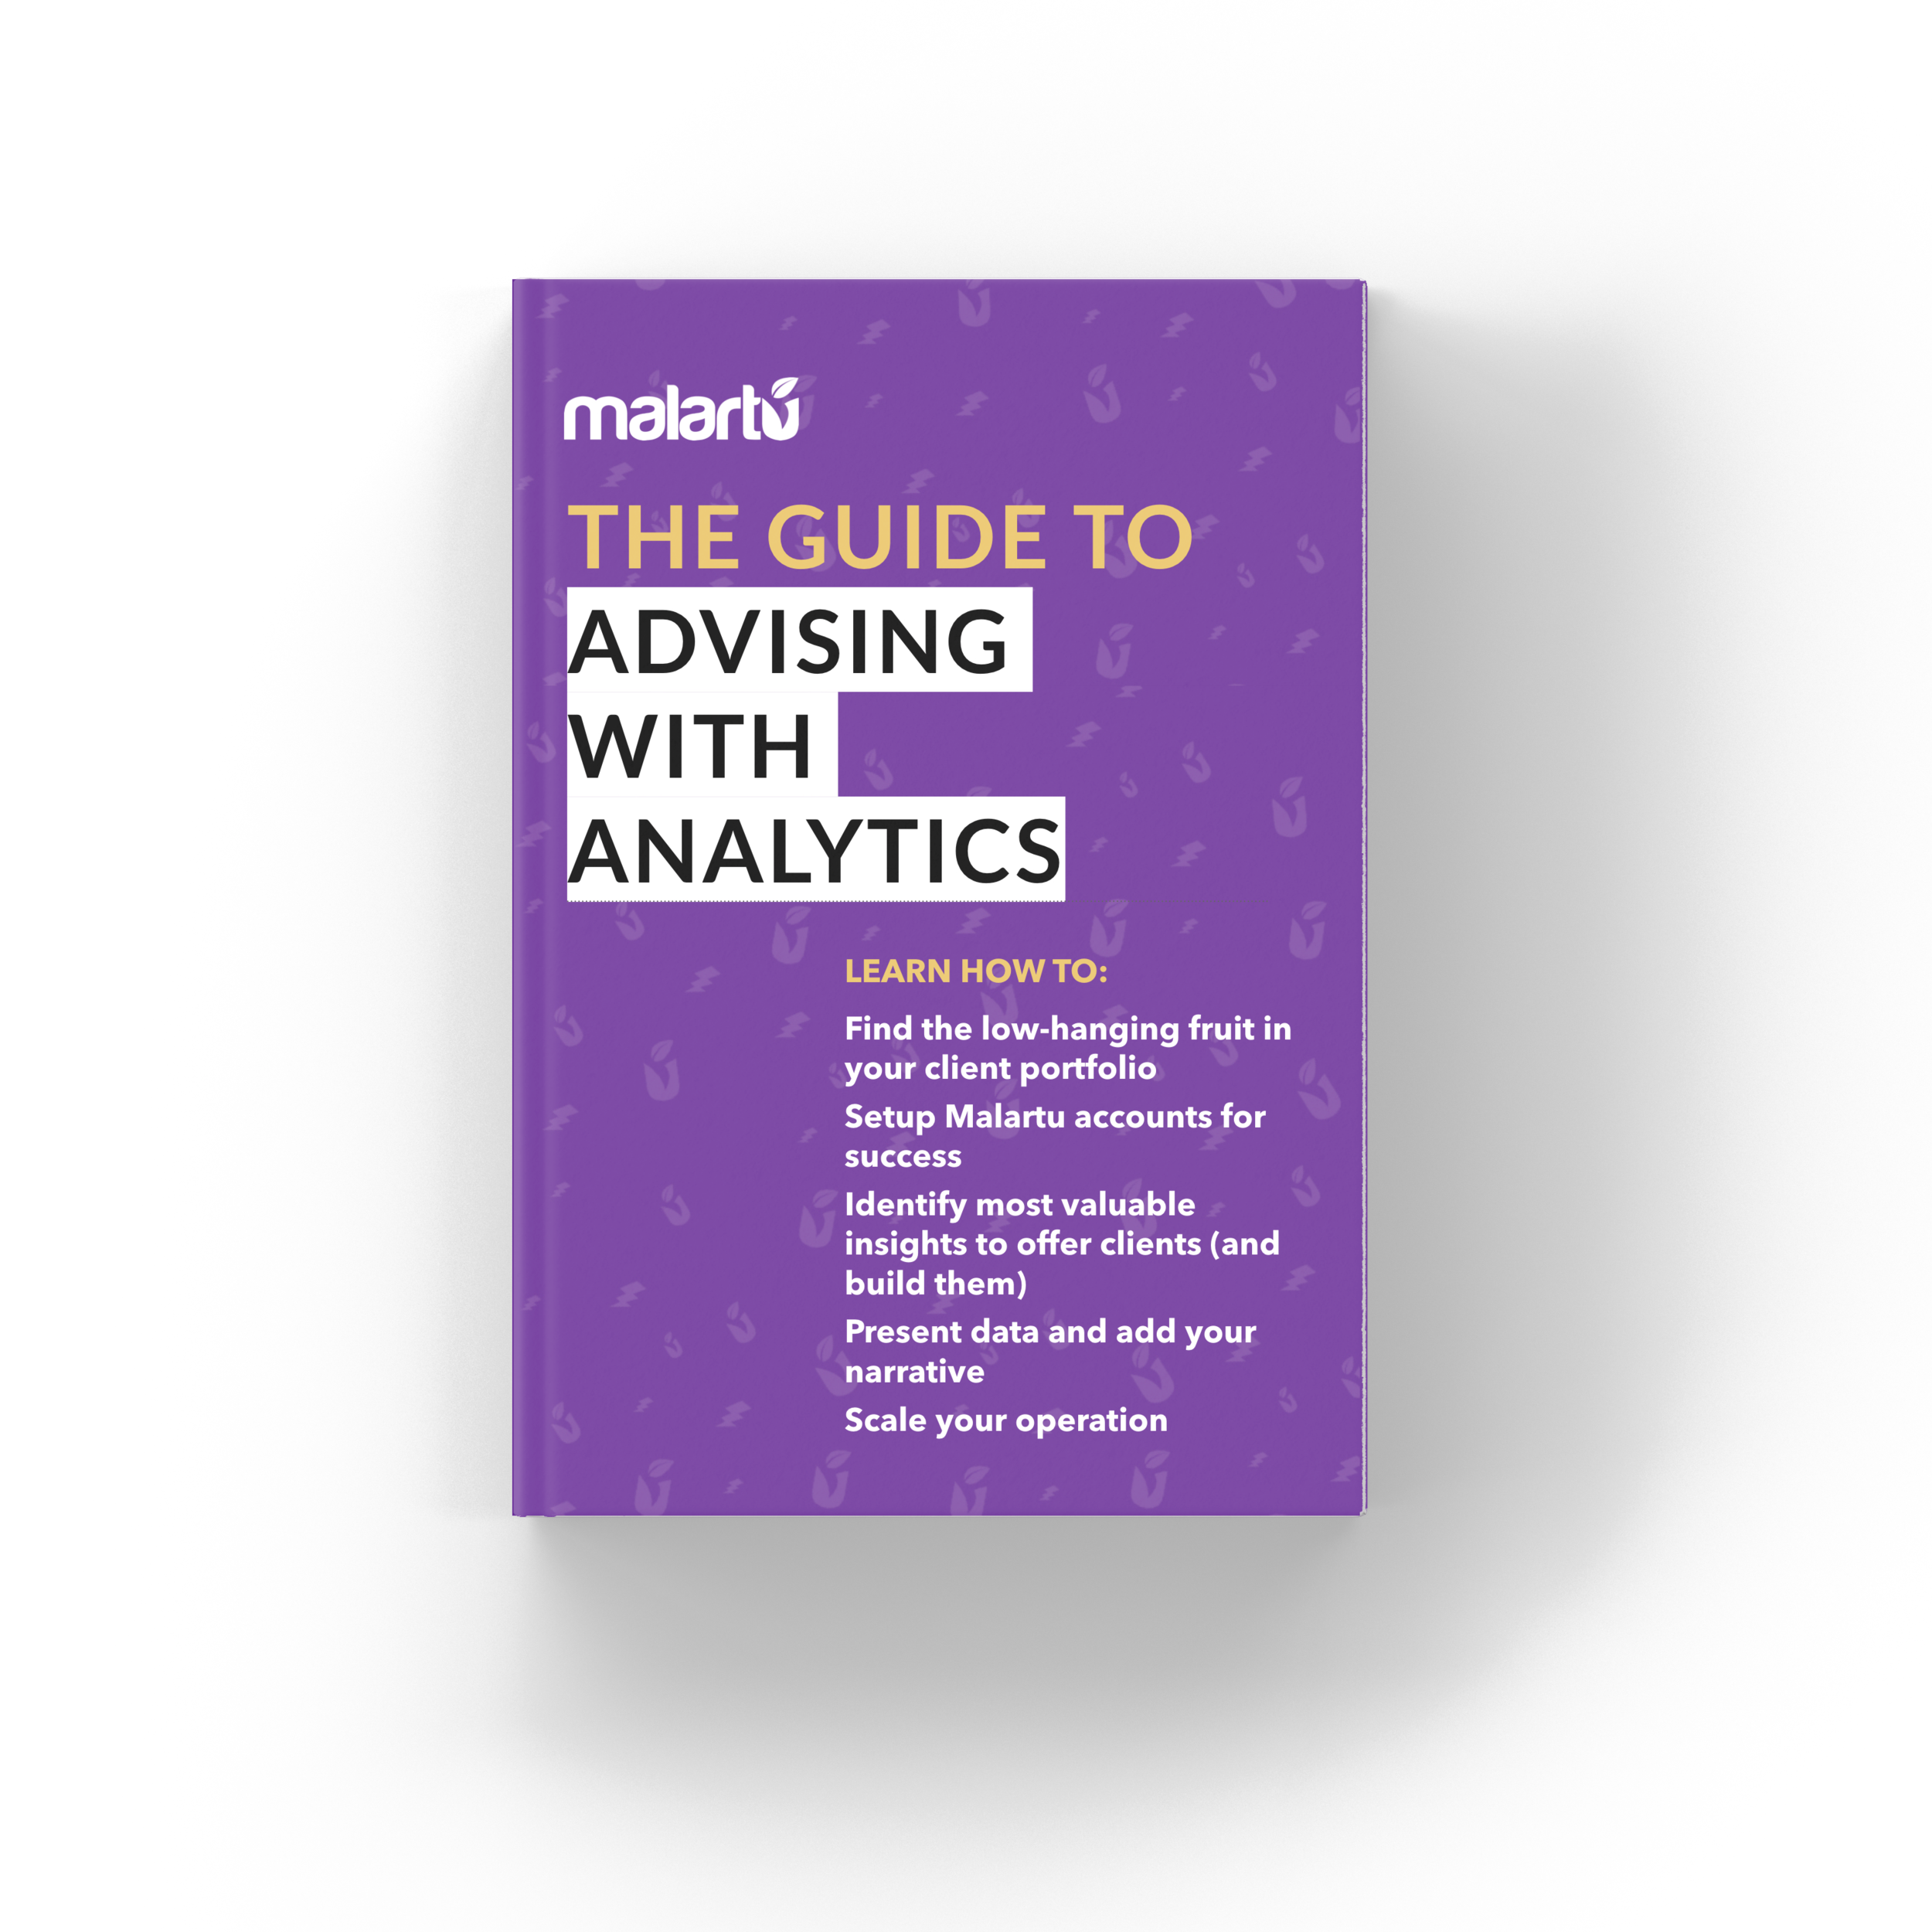 The Guide to Advising with Analytics - For accountants looking to supercharge your advisory services with analytics. Including best-practices for getting started with Malartu.